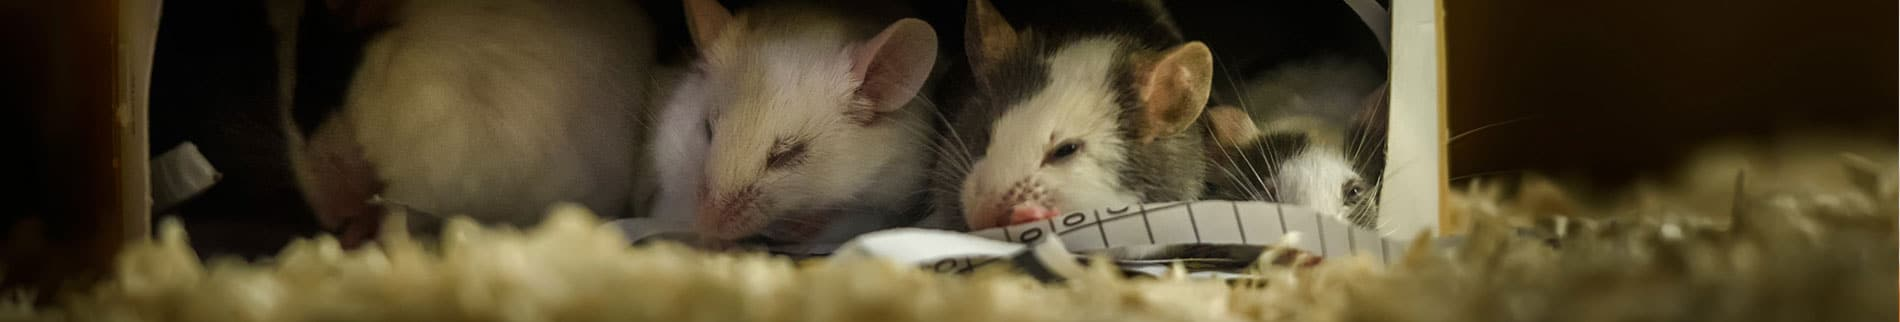 Mice and Rat Control Products